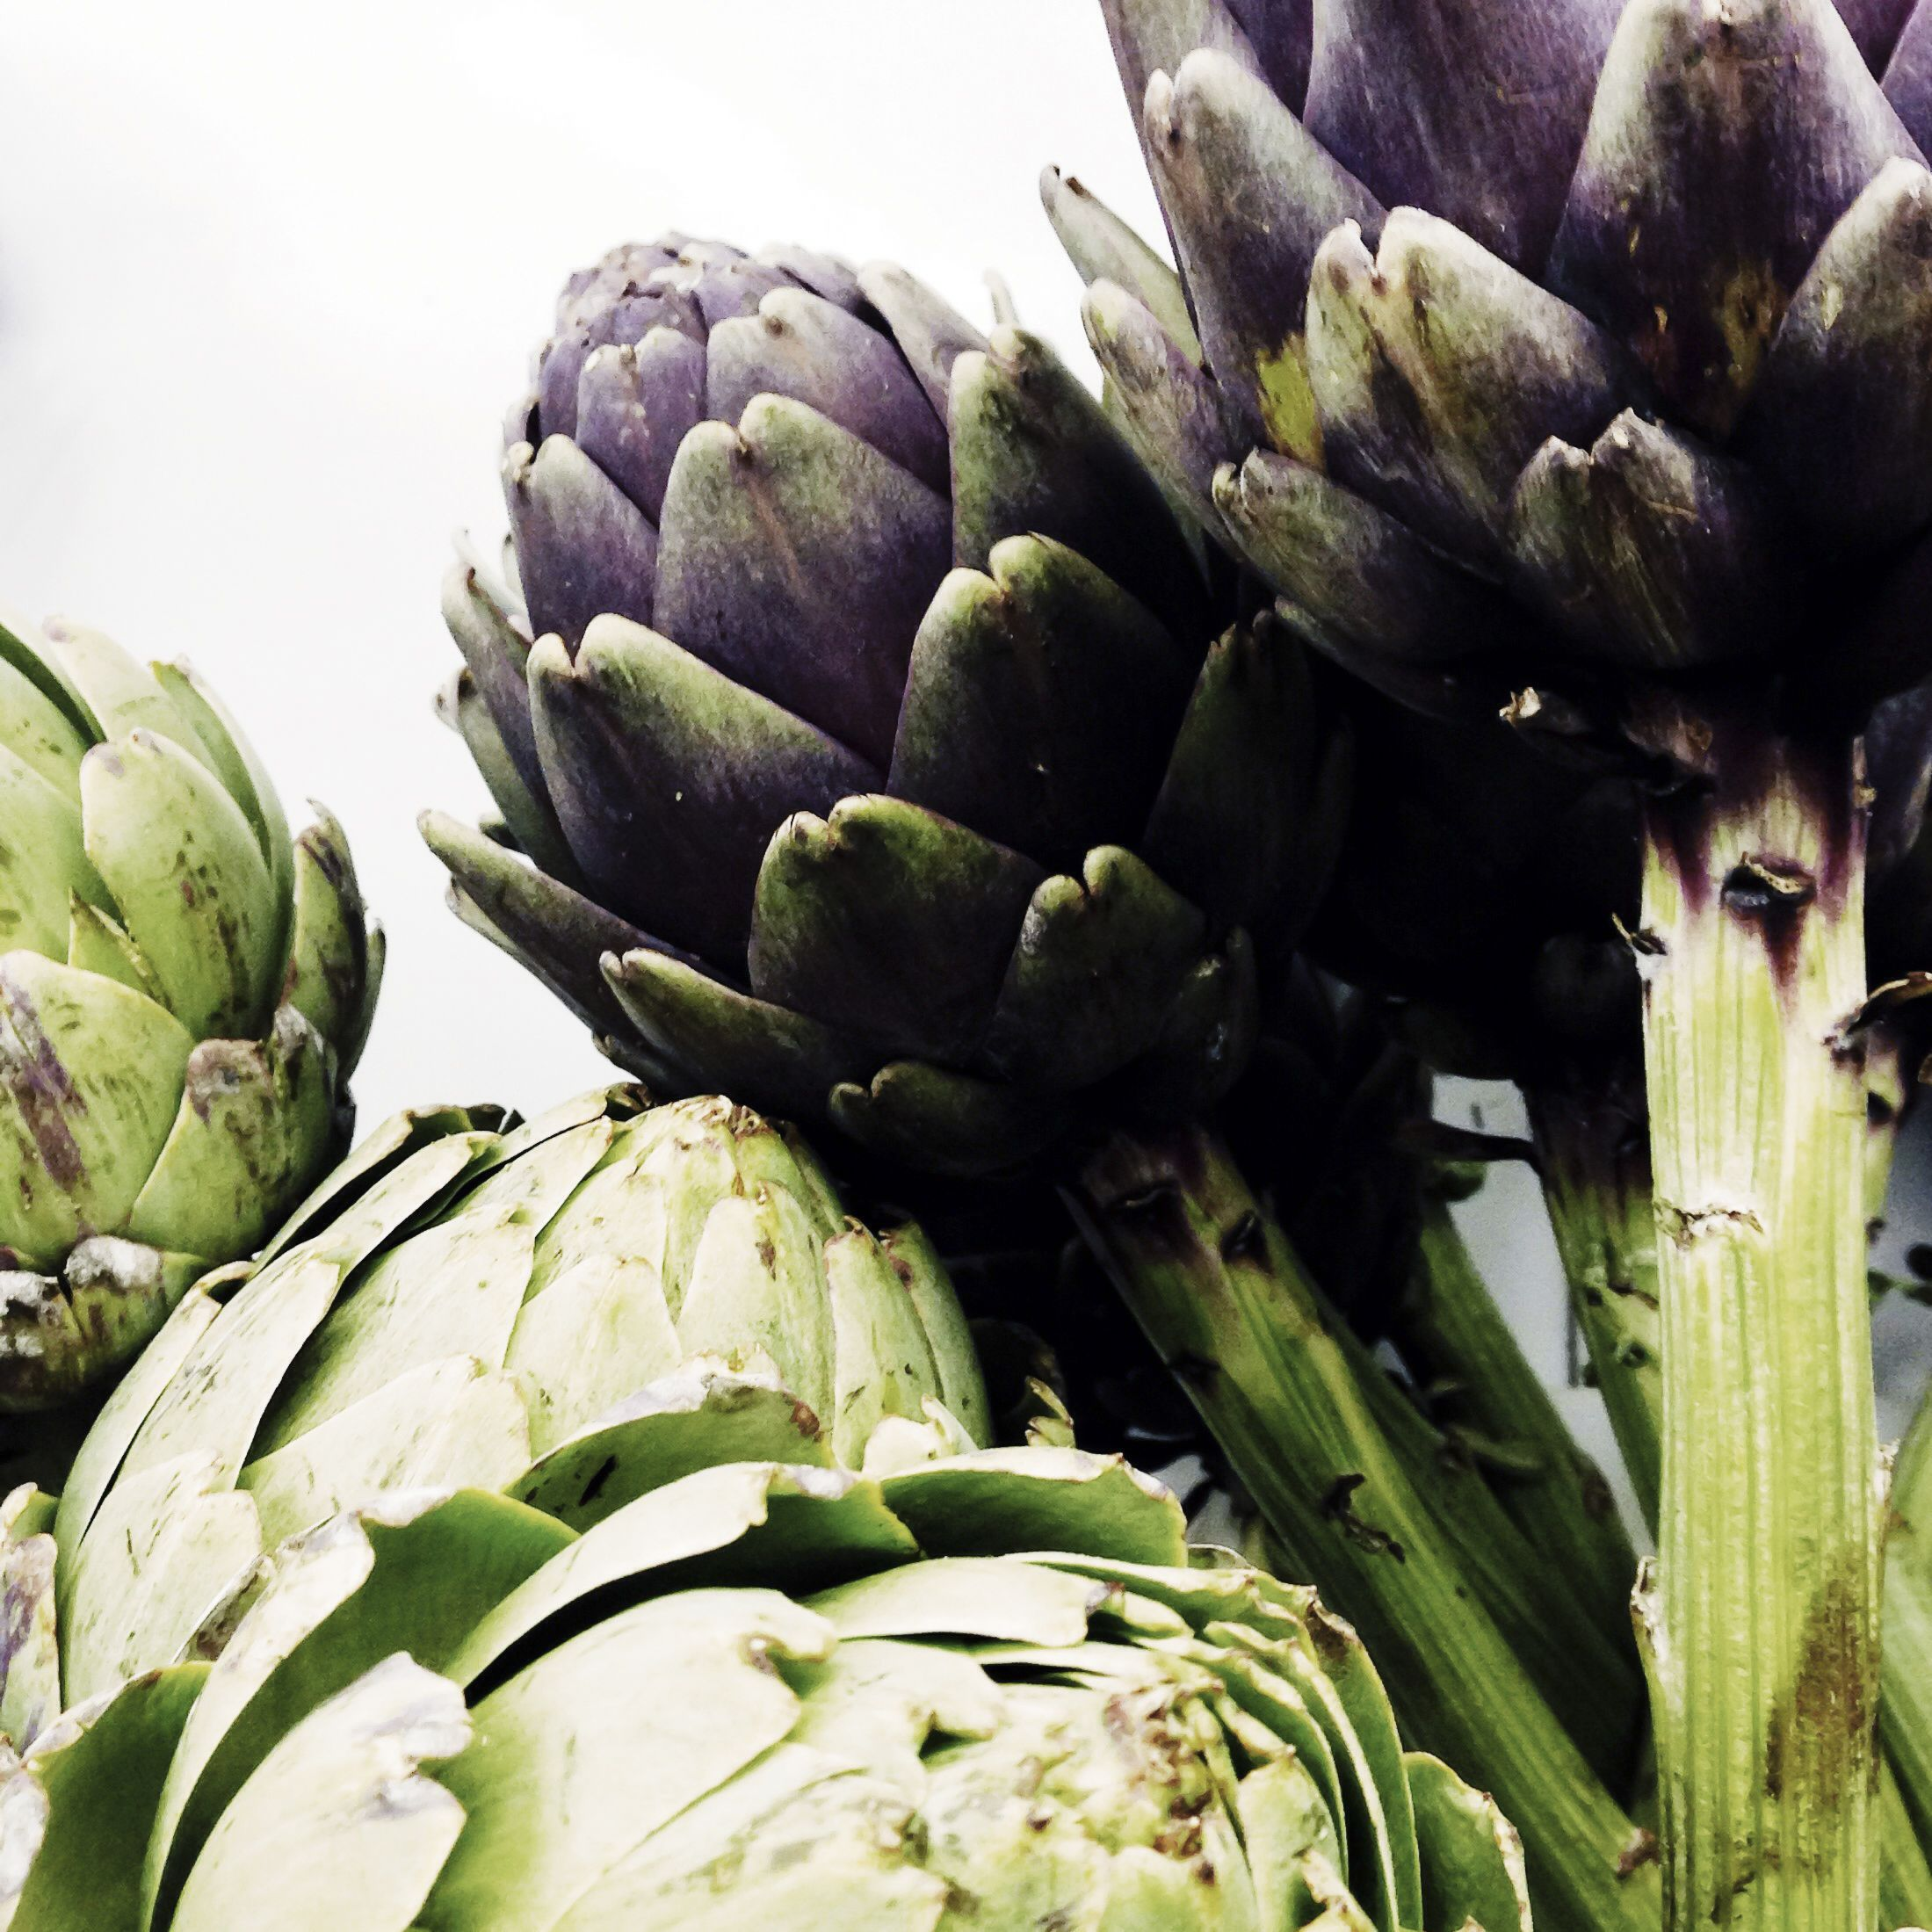 Artichokes make great arrangements for the home